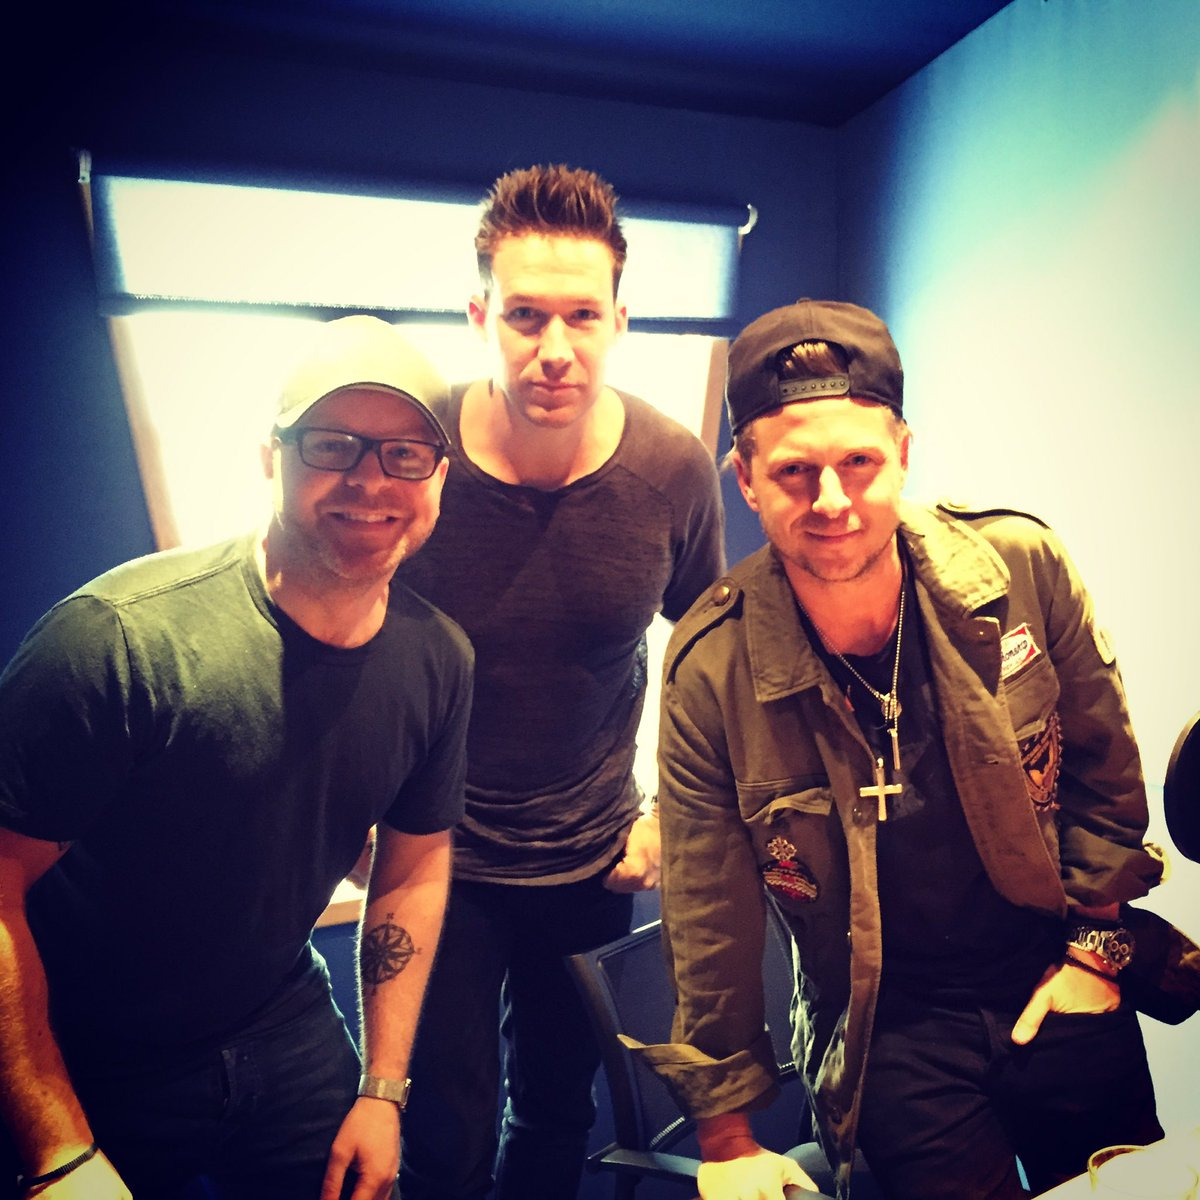 Hey @OneRepublic great to meet you yesterday!! Interview coming soon on @VirginRadioUK https://t.co/pb55C0Nx8z